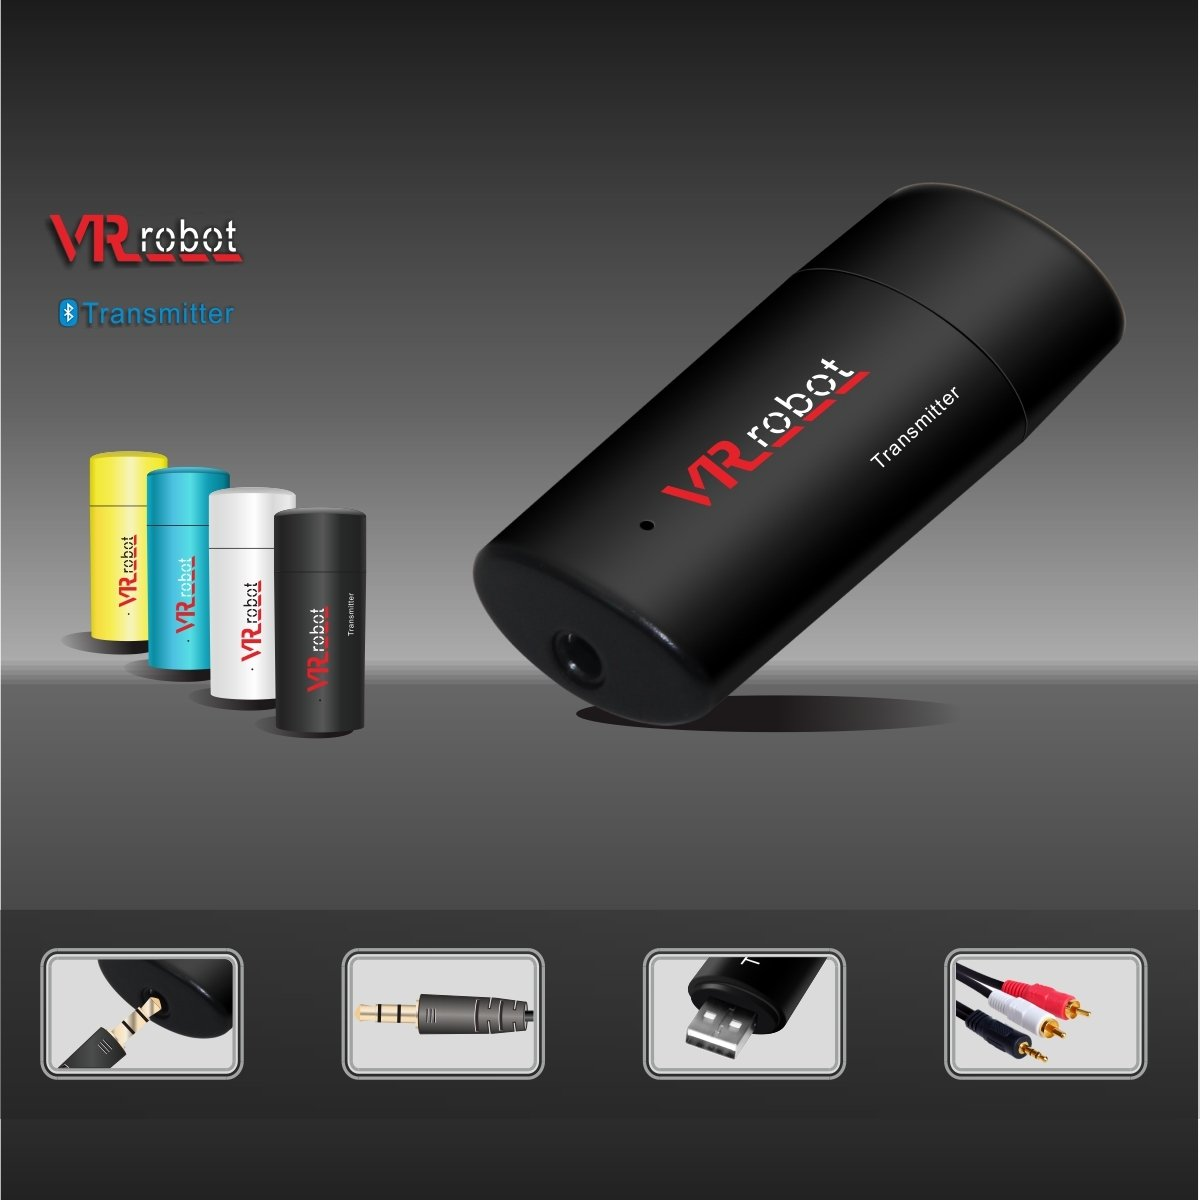 VR-robot 3.5mm Portable Stereo Audio, Wireless Bluetooth Transmitter, for TV, iPod, MP3/MP4,USB Power Supply(Black) by VR-robot (Image #5)